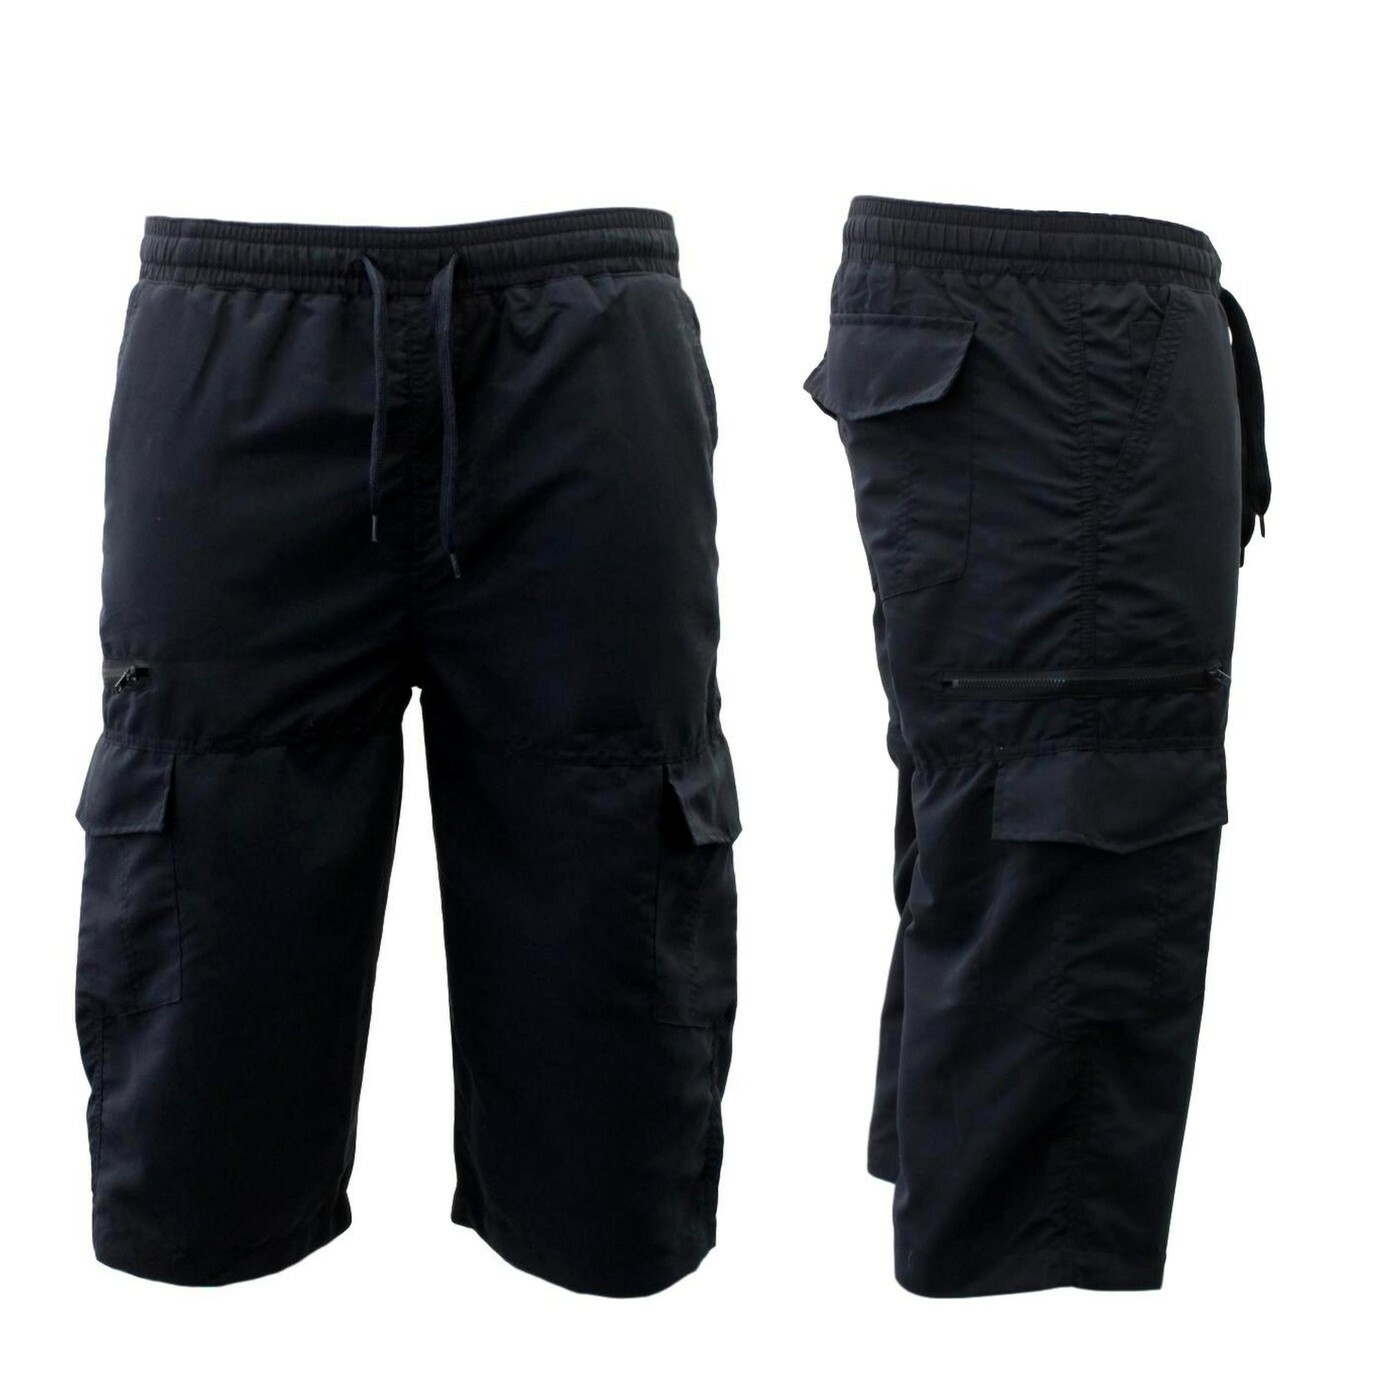 Mens-3-4-Cargo-Long-Shorts-Multi-Pocket-Elastic-Waist-Drawstring thumbnail 9